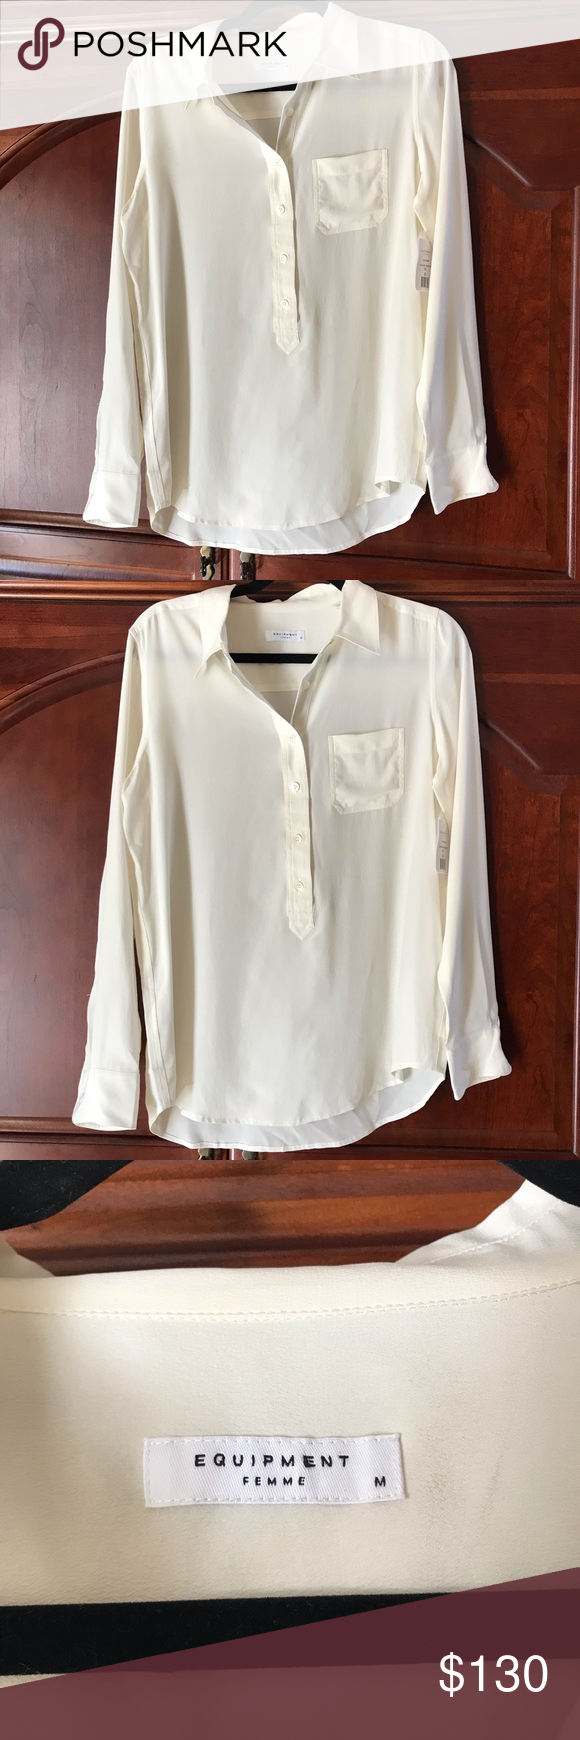 55056c23b9a14 100% silk. Size medium. Natural white color. Buttons down 3 4 of the way.  Long sleeves. Open to offers Equipment Tops Button Down Shirts